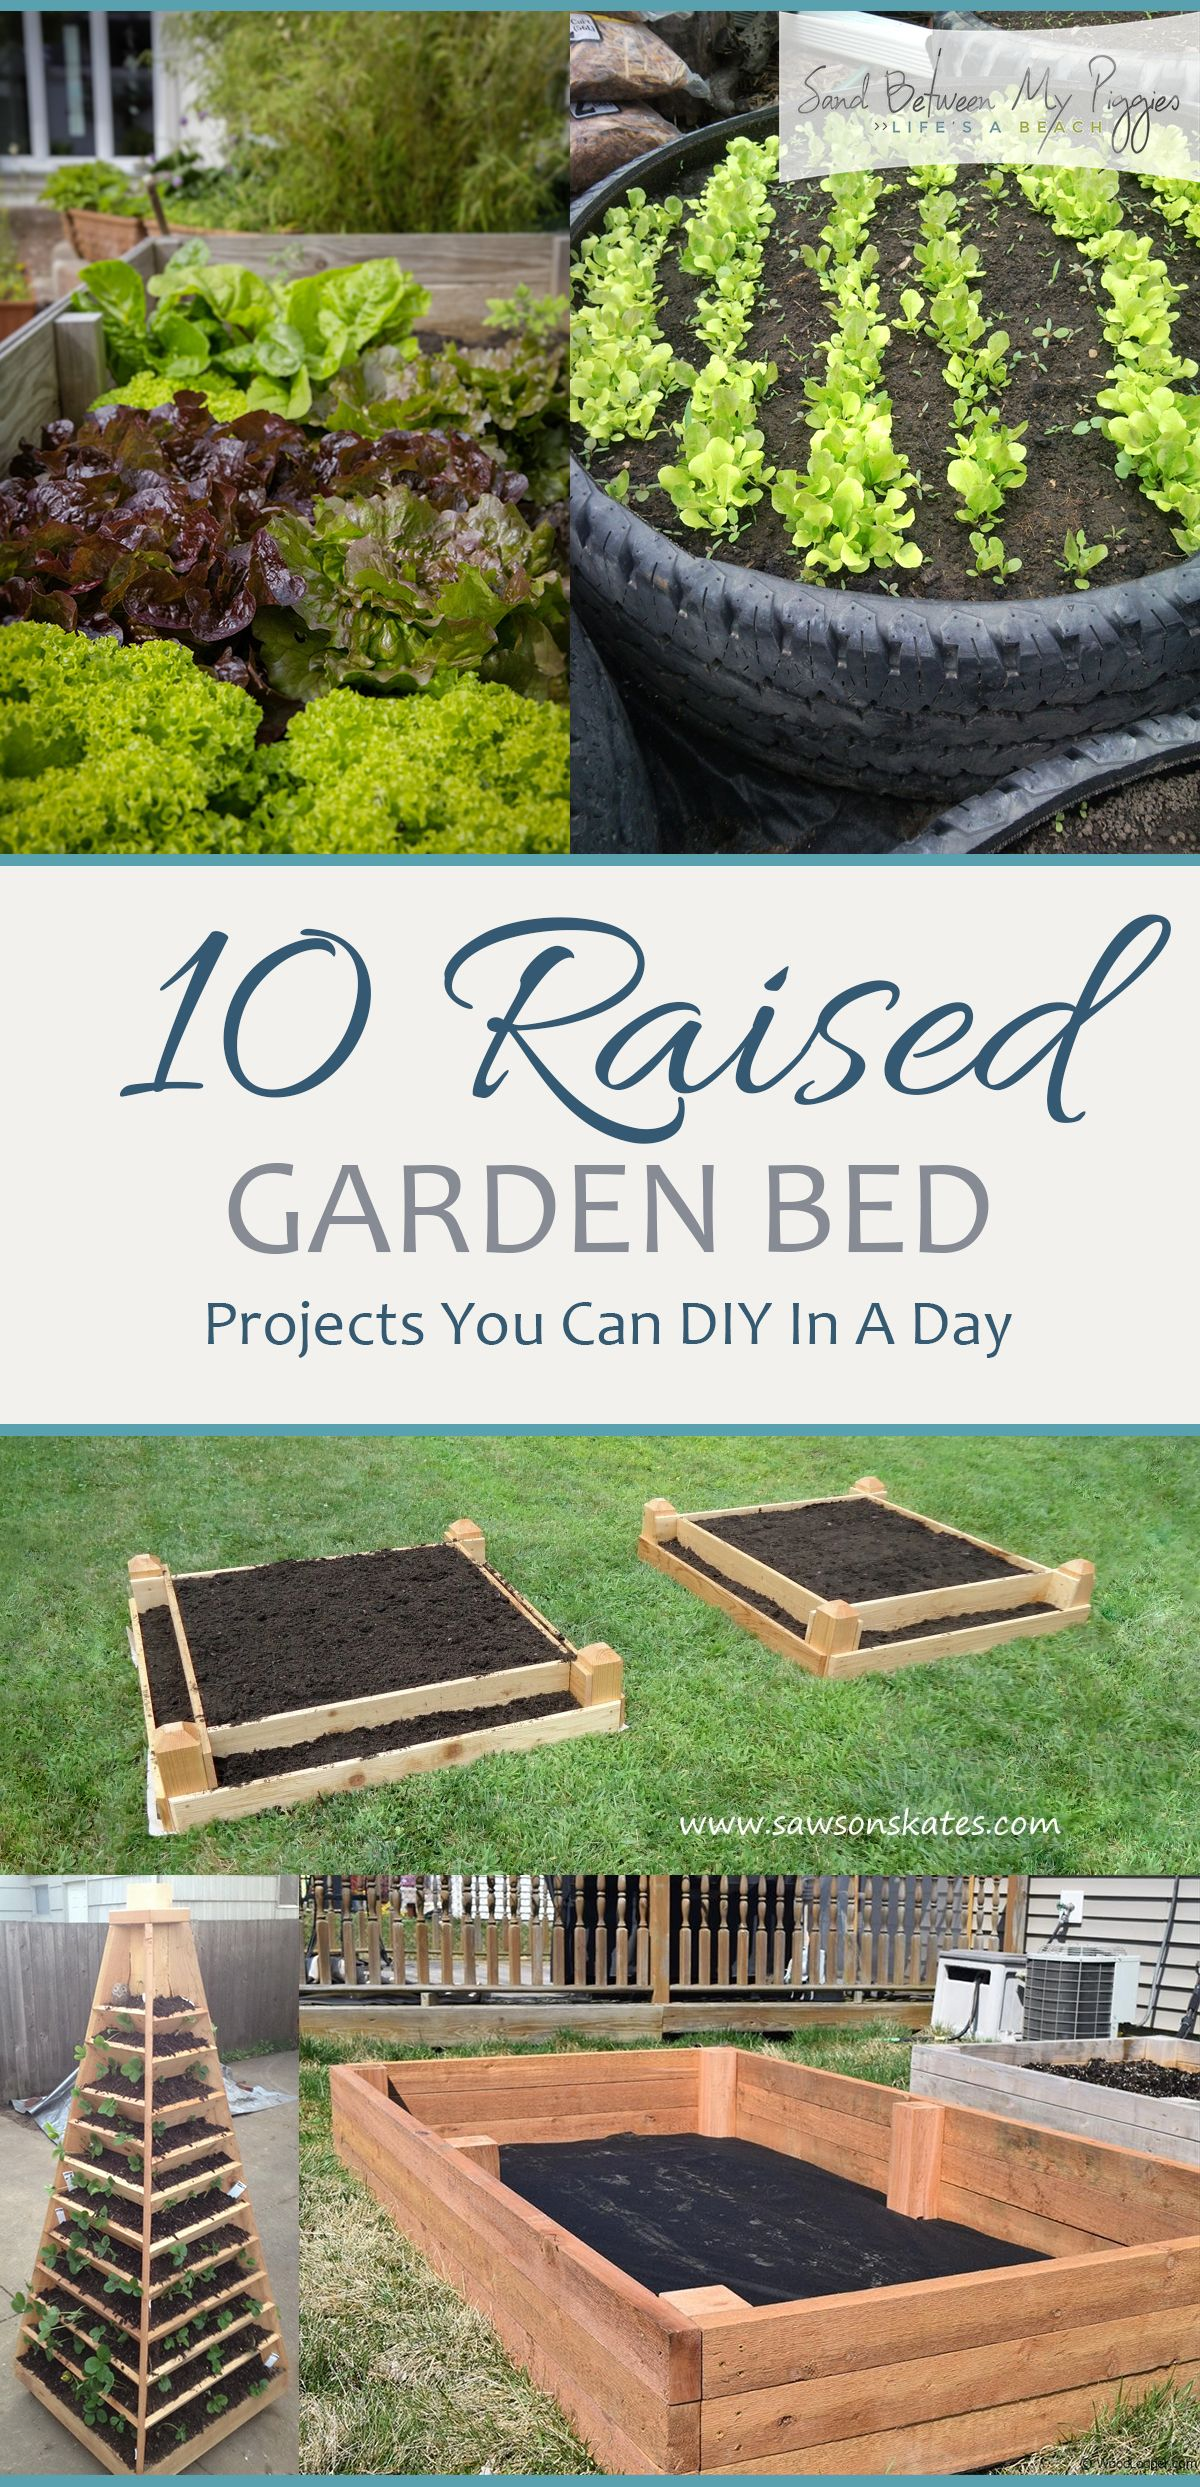 10 Raised Garden Bed Projects You Can DIY In A Day